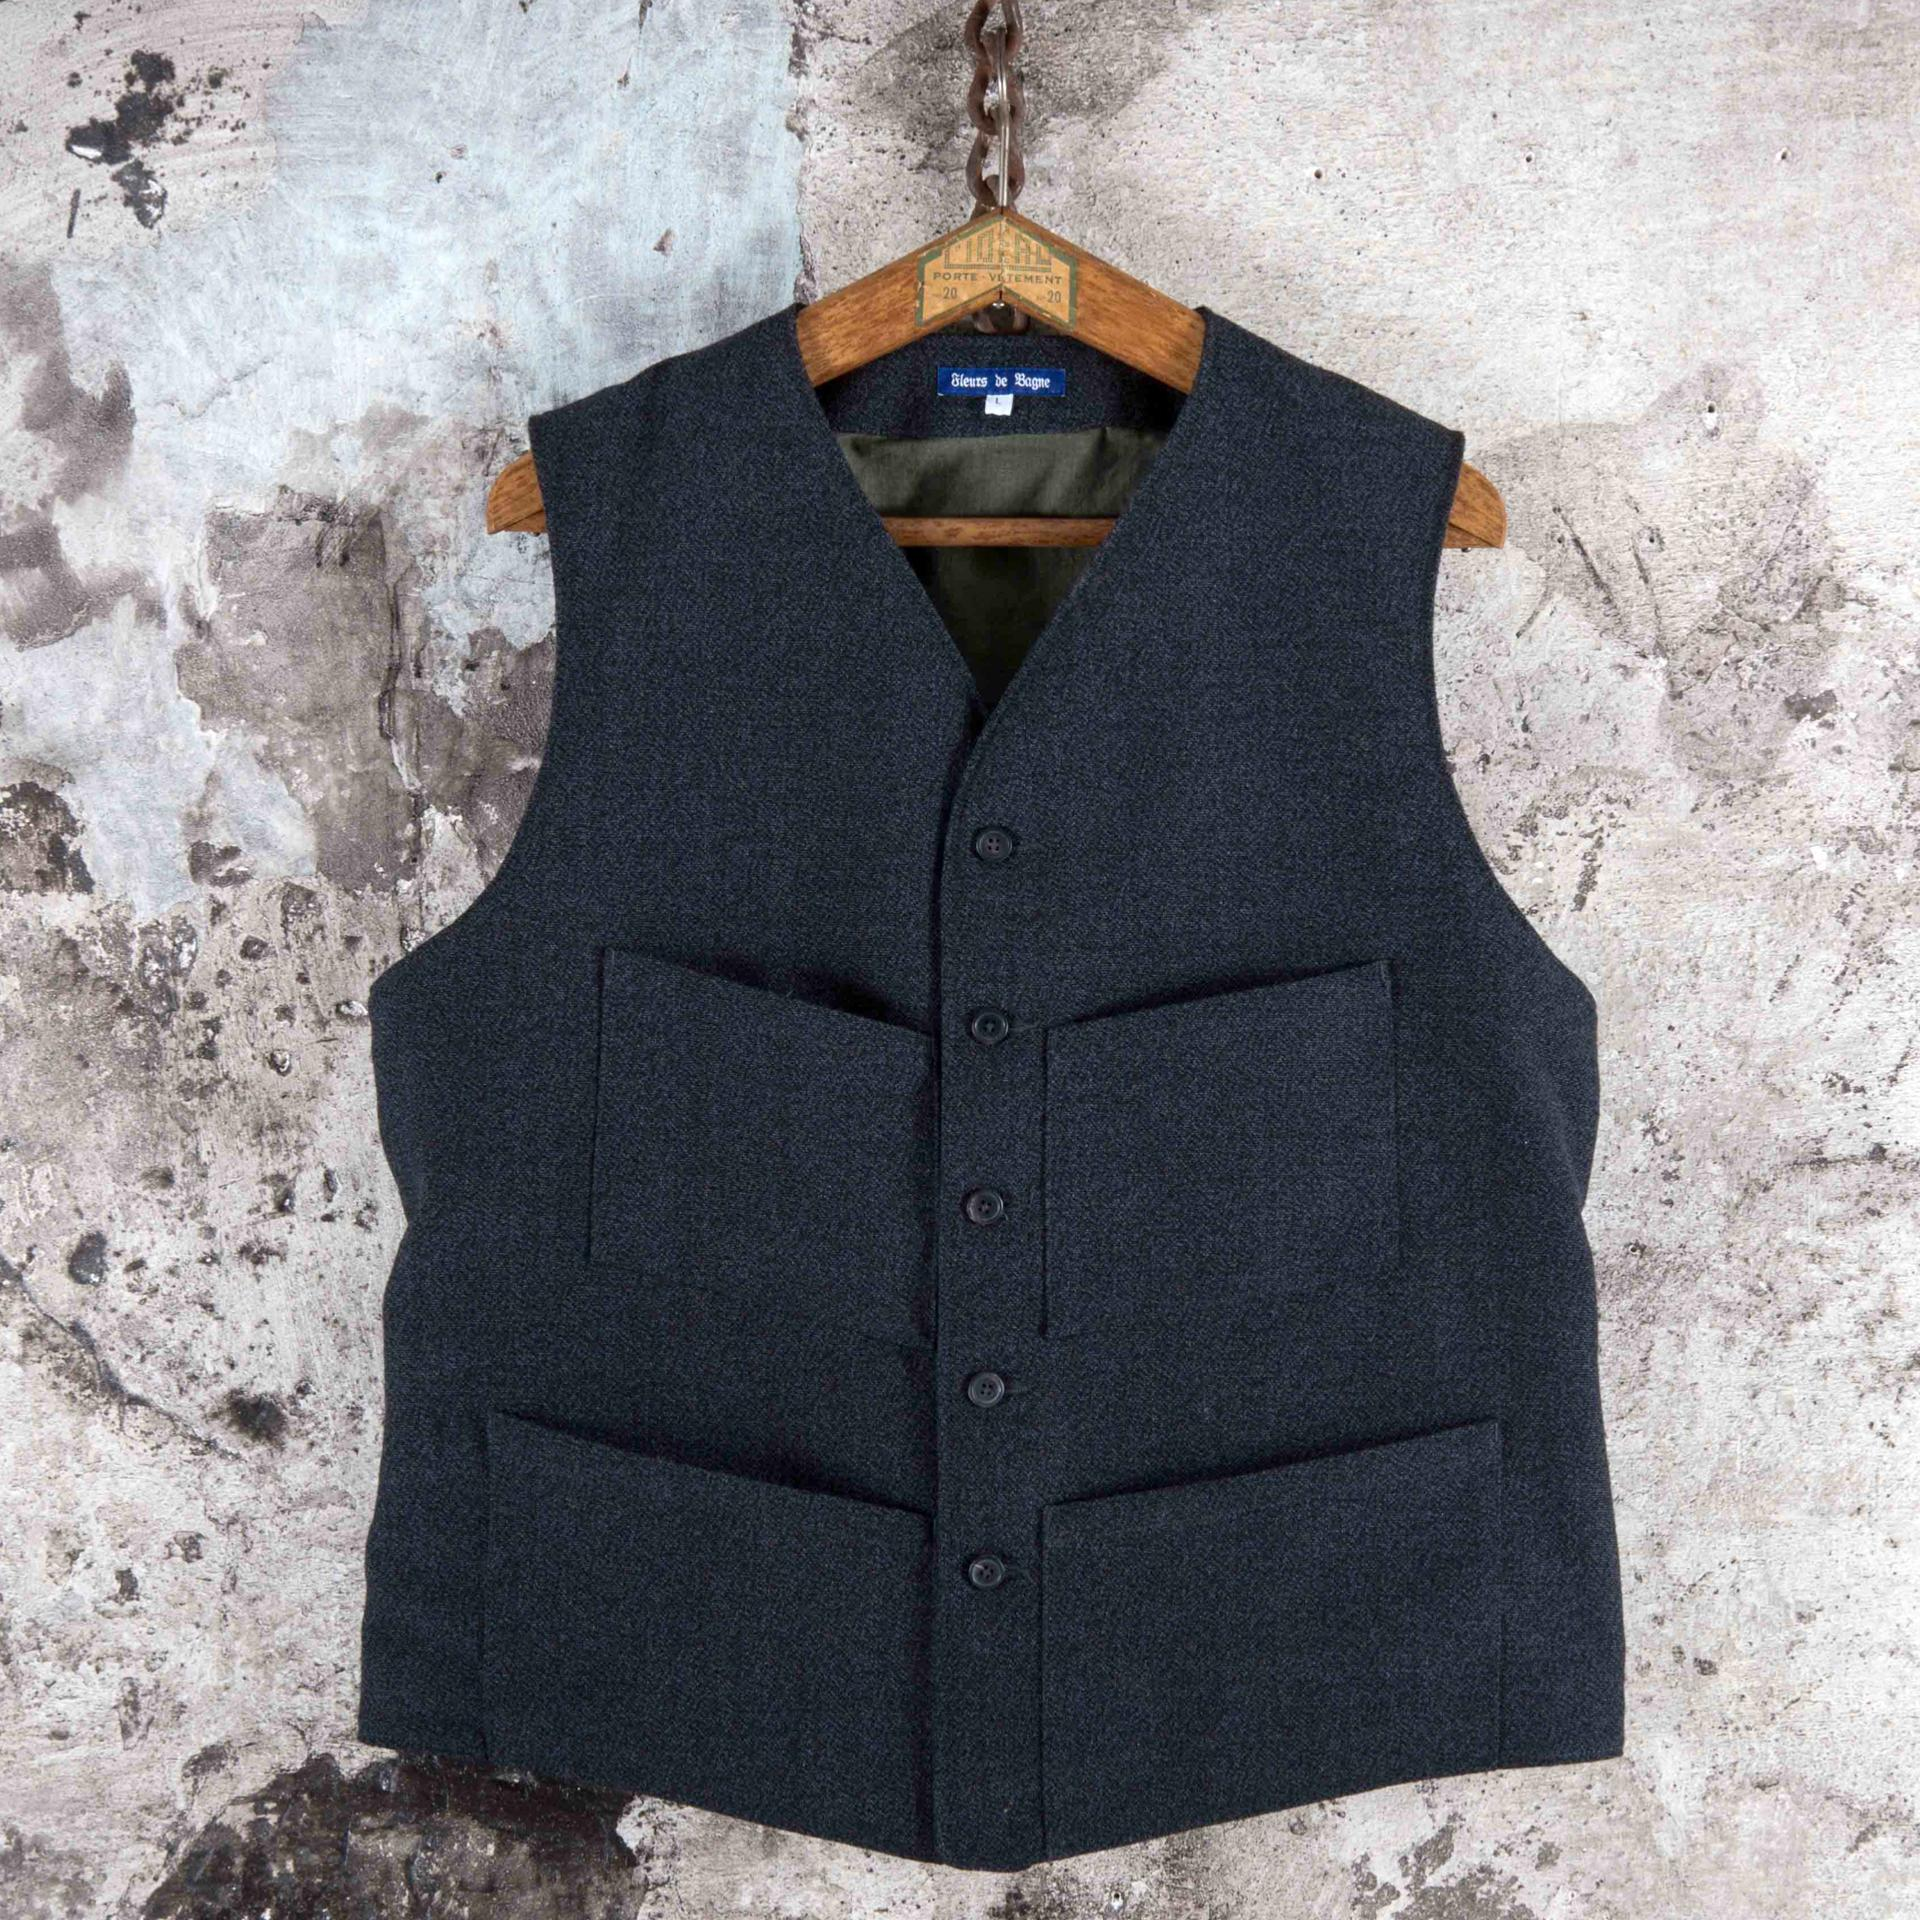 THE MILORD VEST